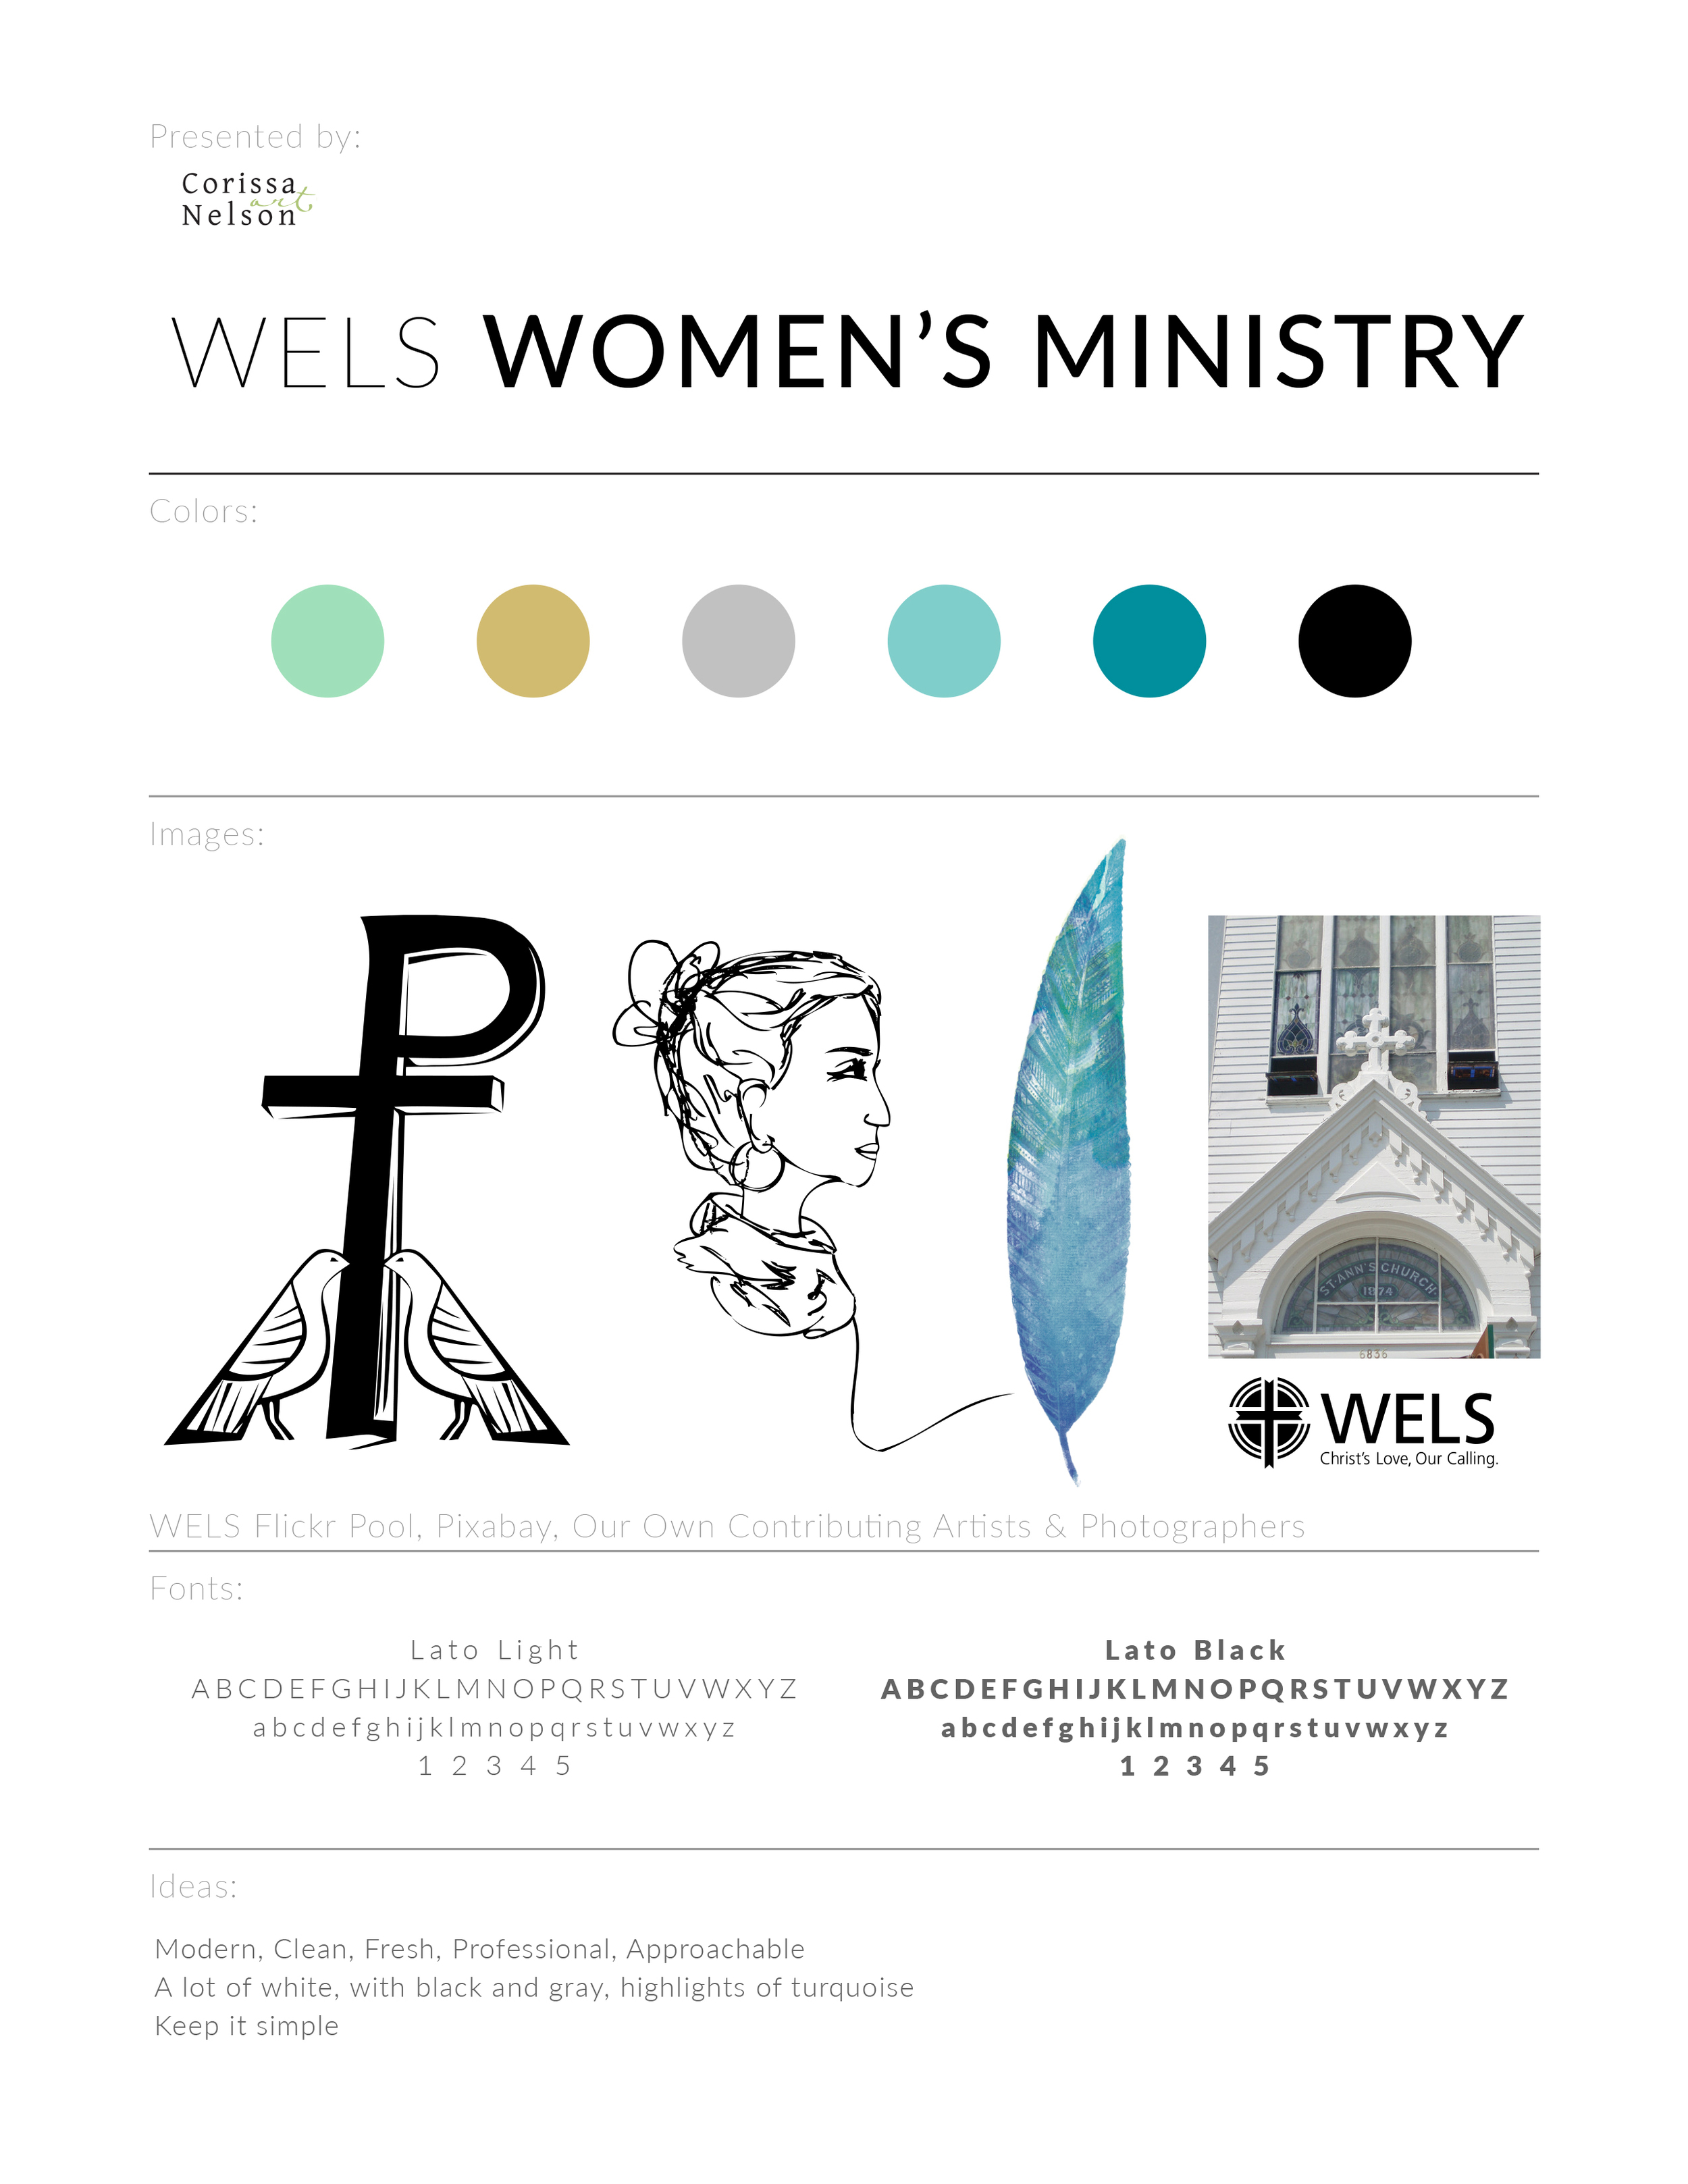 WELS Women's Ministry Committee Preliminary Branding Concepts